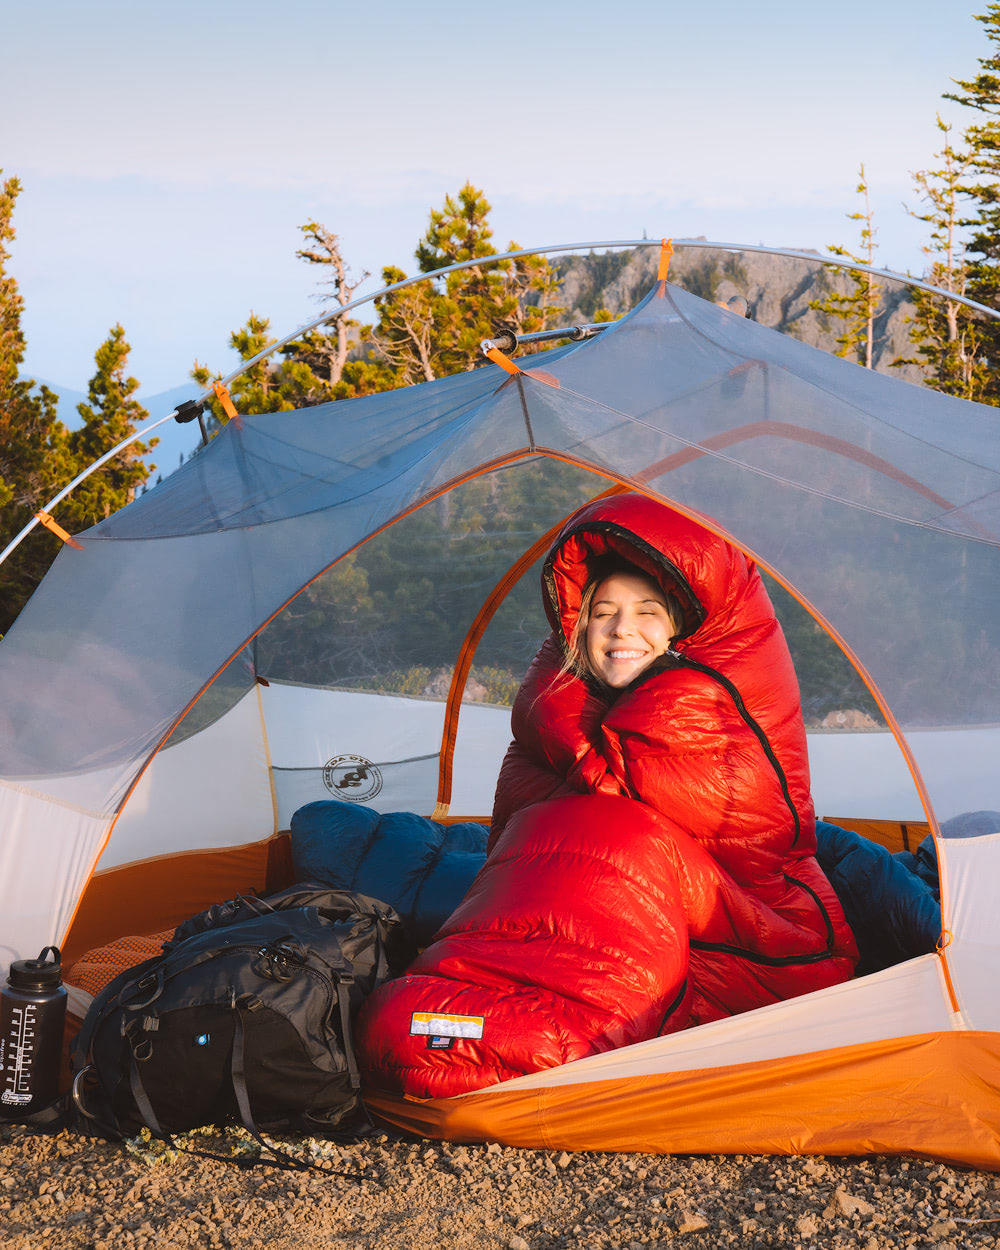 How To Travel Full Time - Must Know Tips for Affording to Travel the World - Tent Camping